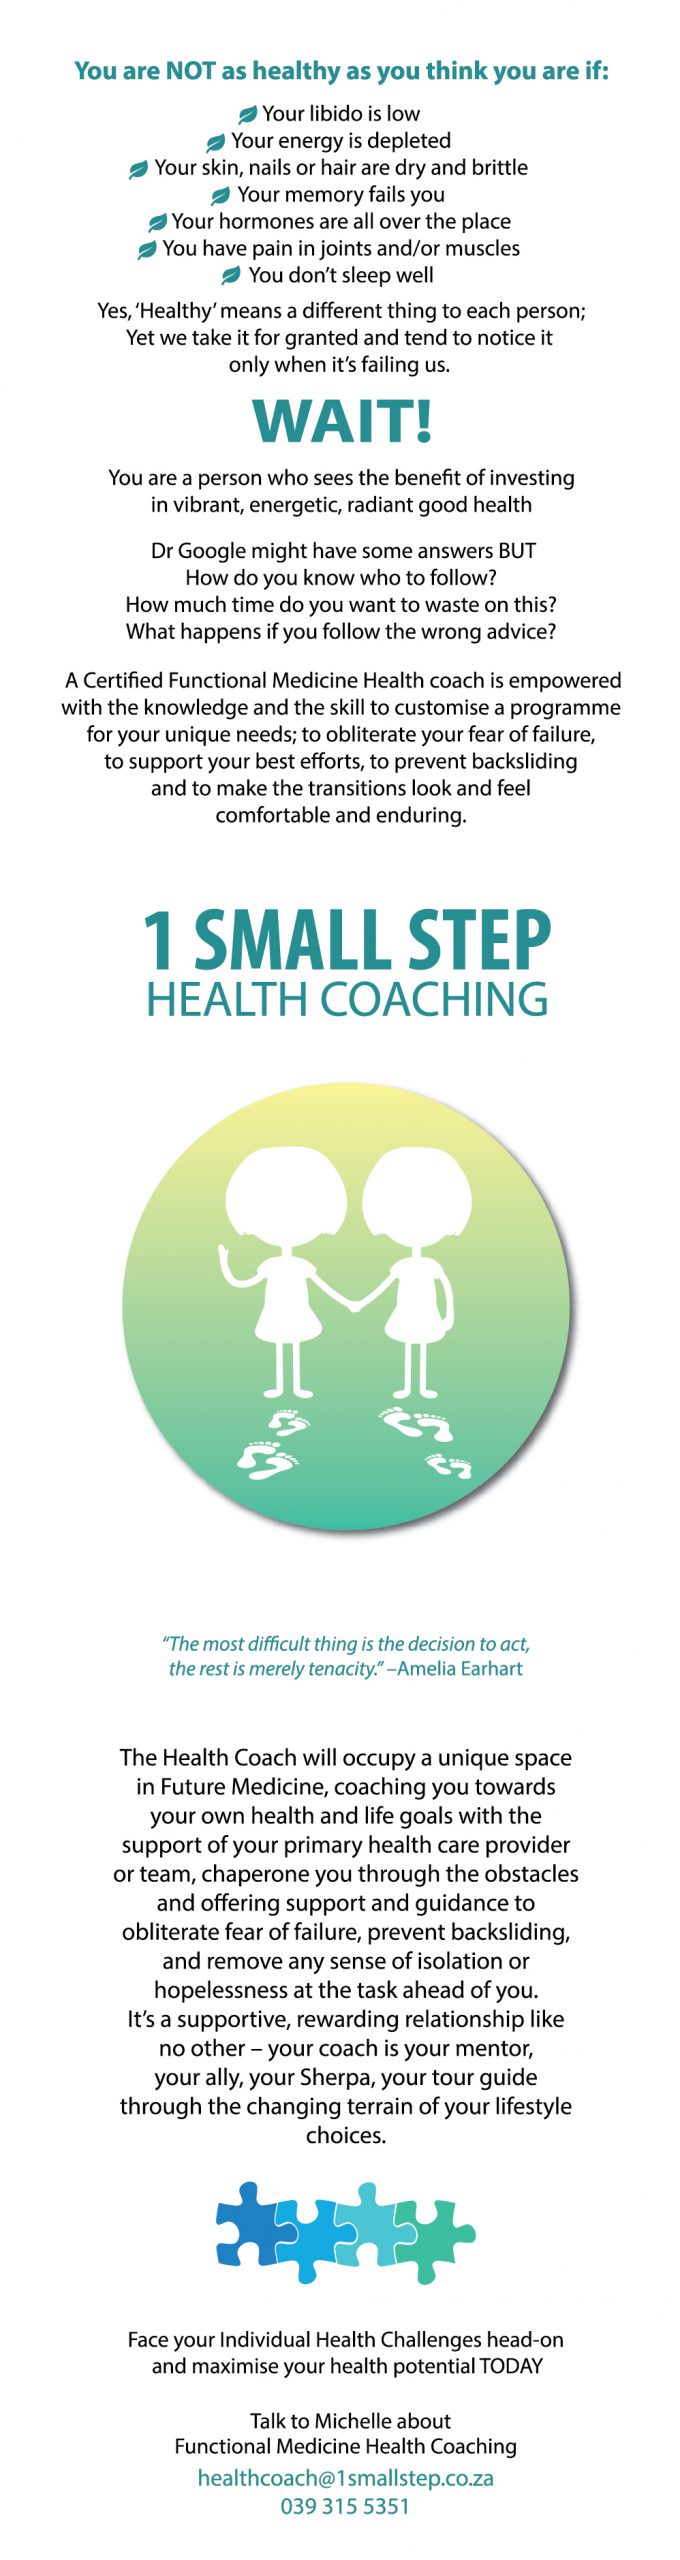 one-small-step-health-coaching